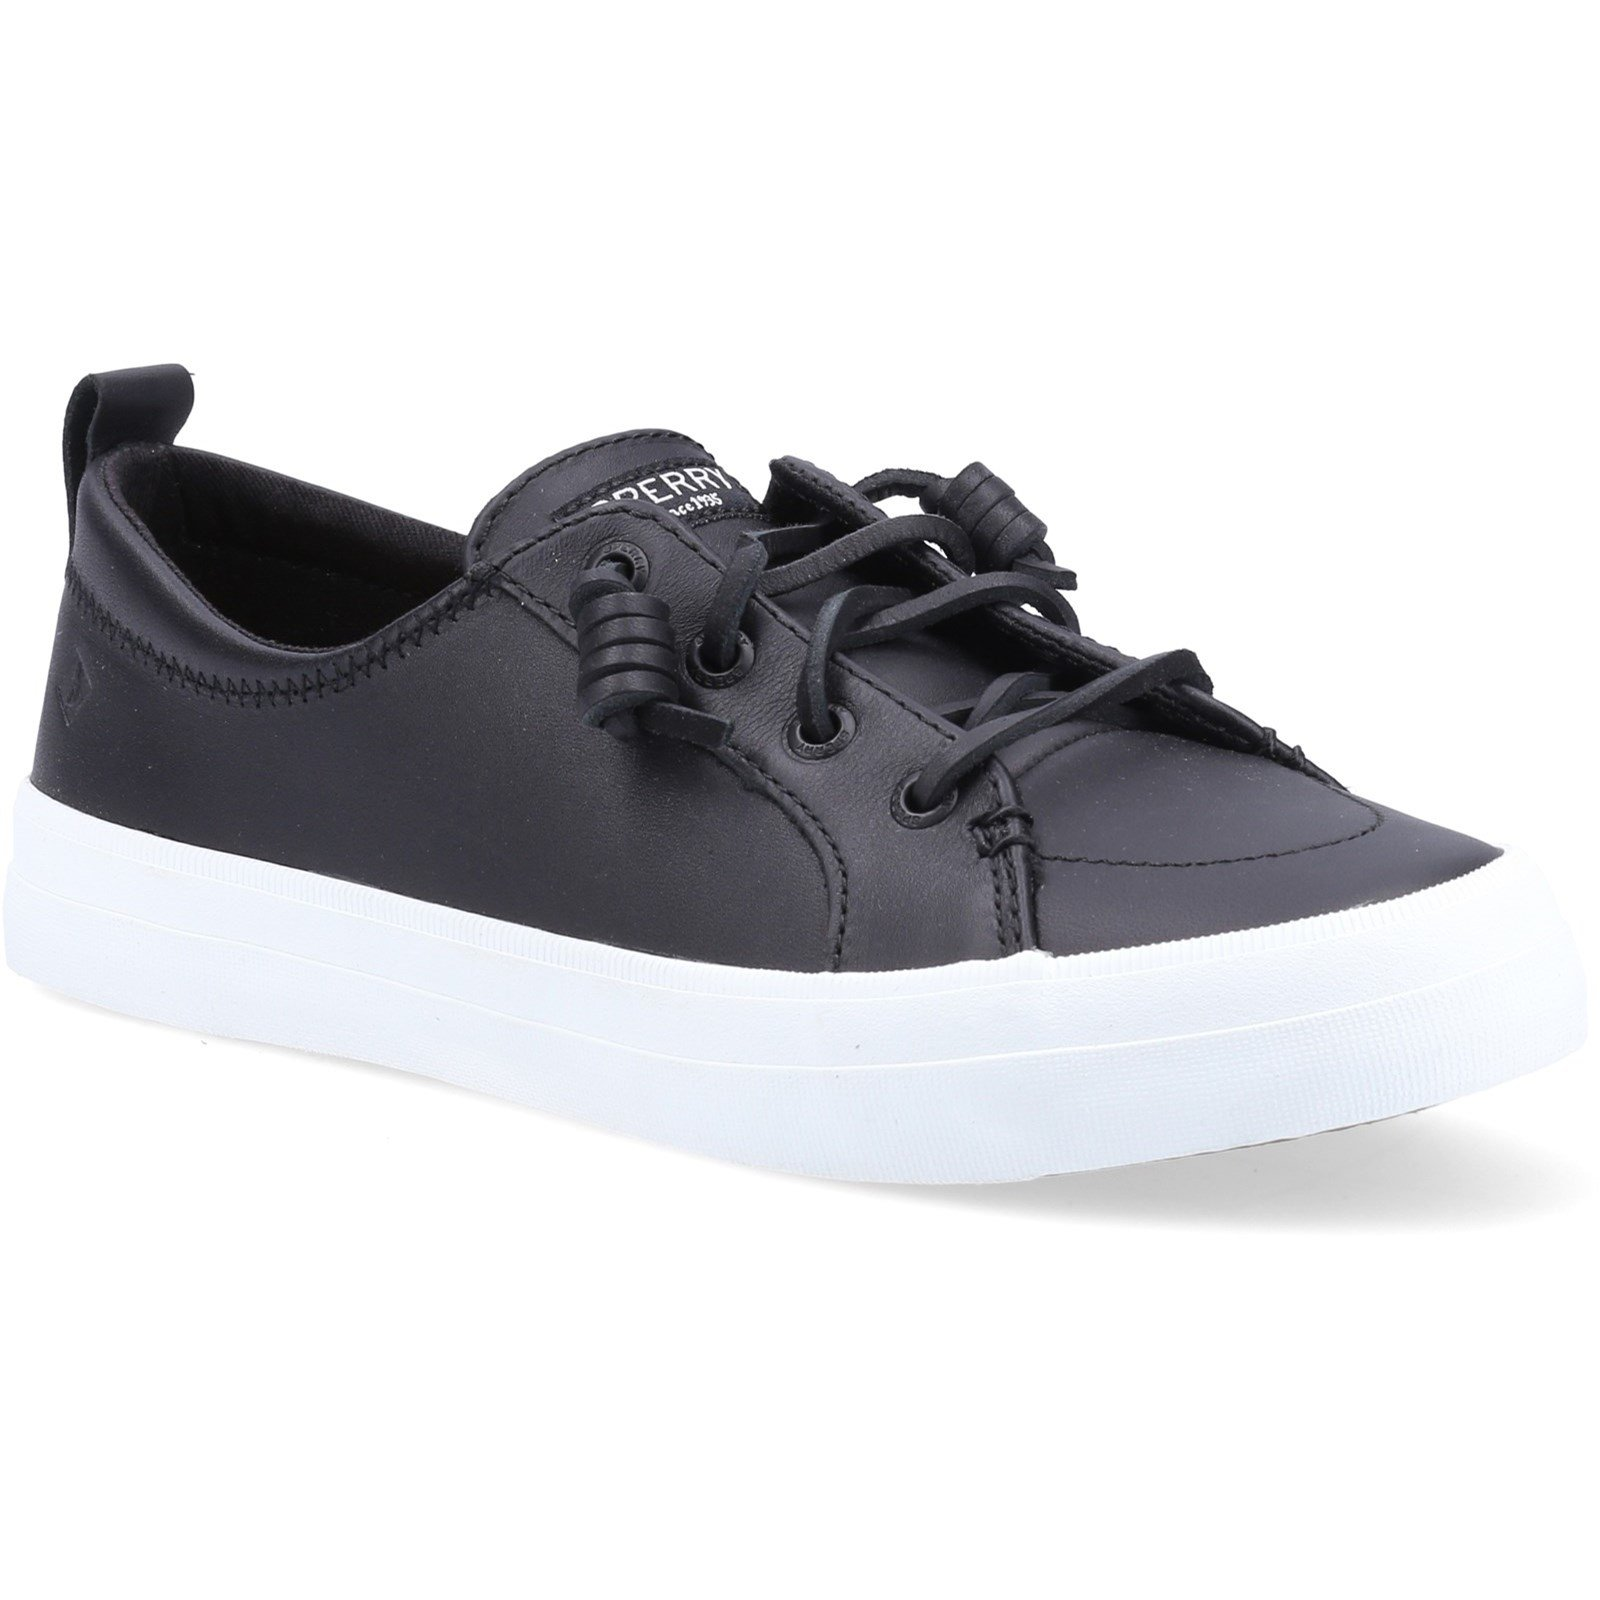 Sperry Women's Crest Vibe Leather Trainers Black 32404 - Black 4